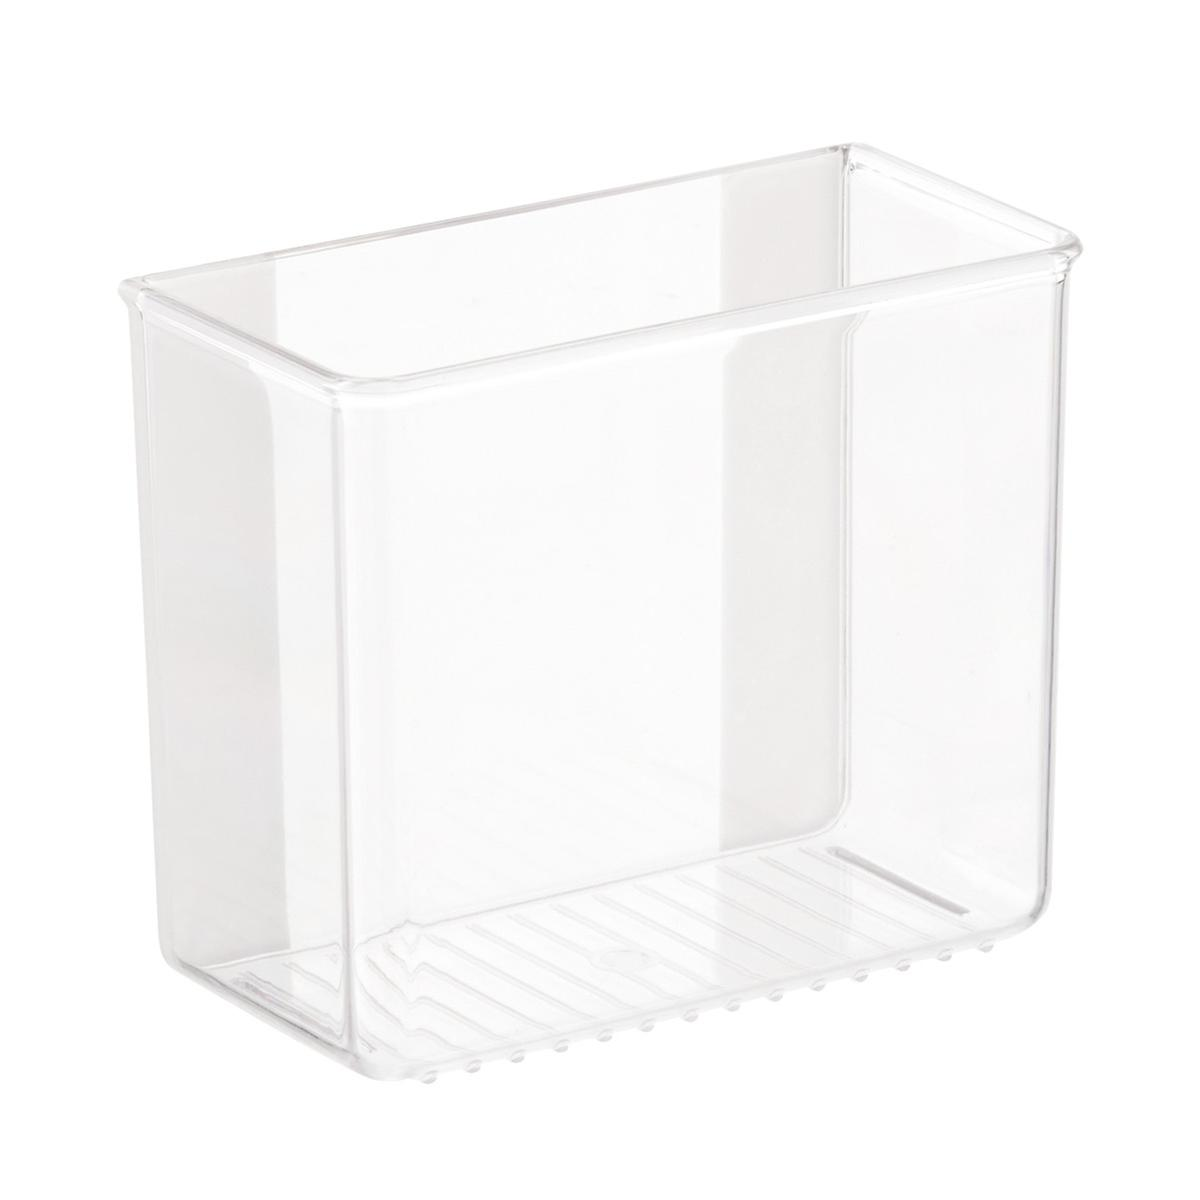 Kitchen Storage Bins: InterDesign Affixx Adhesive Organizer Bins